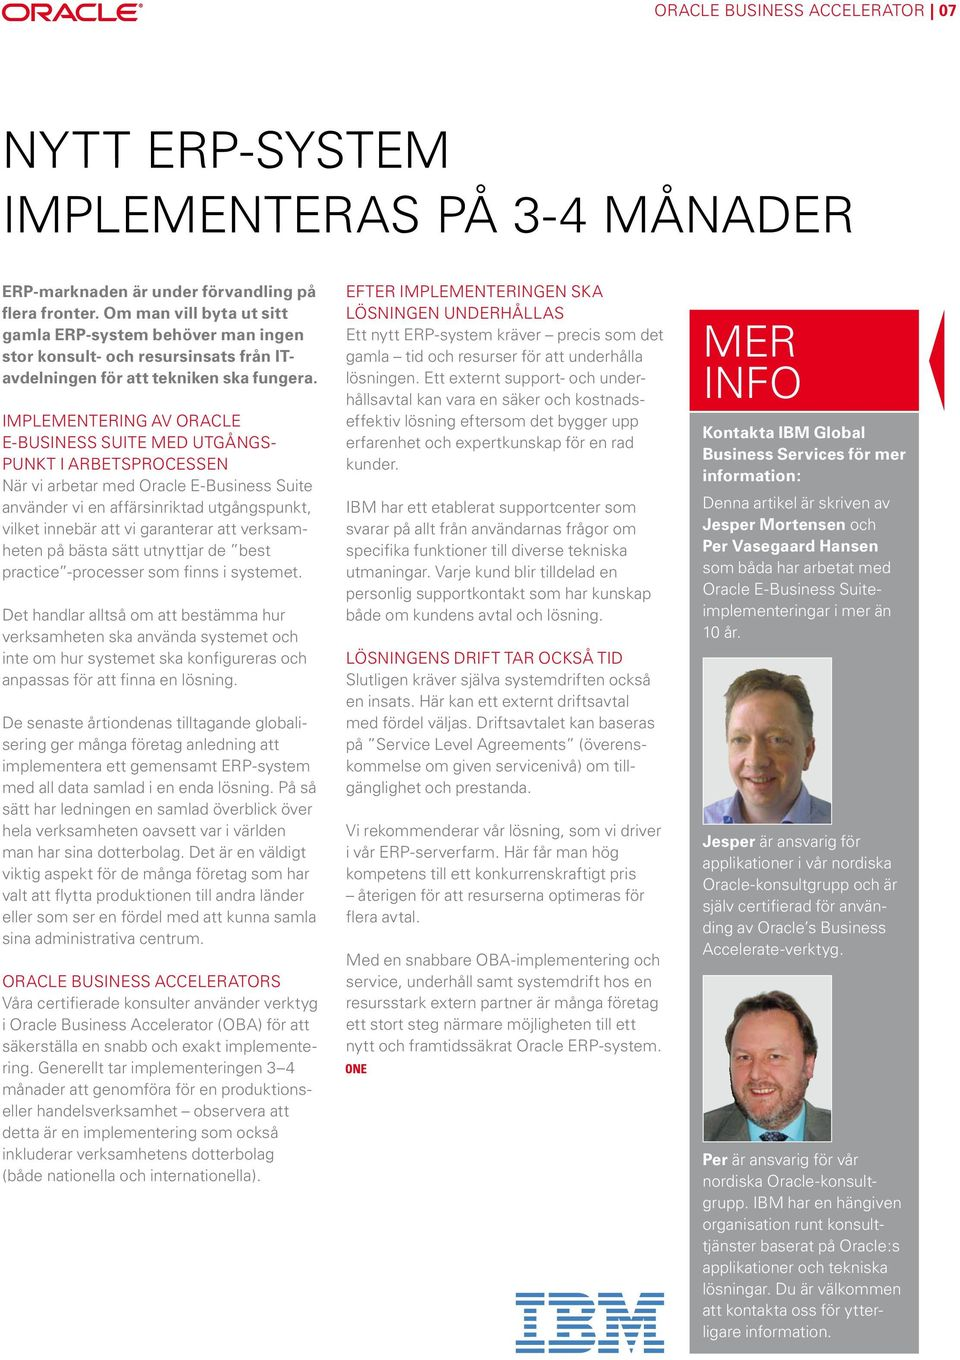 Implementering av Oracle E-Business Suite med utgångspunkt i arbetsprocessen När vi arbetar med Oracle E-Business Suite använder vi en affärsinriktad utgångspunkt, vilket innebär att vi garanterar